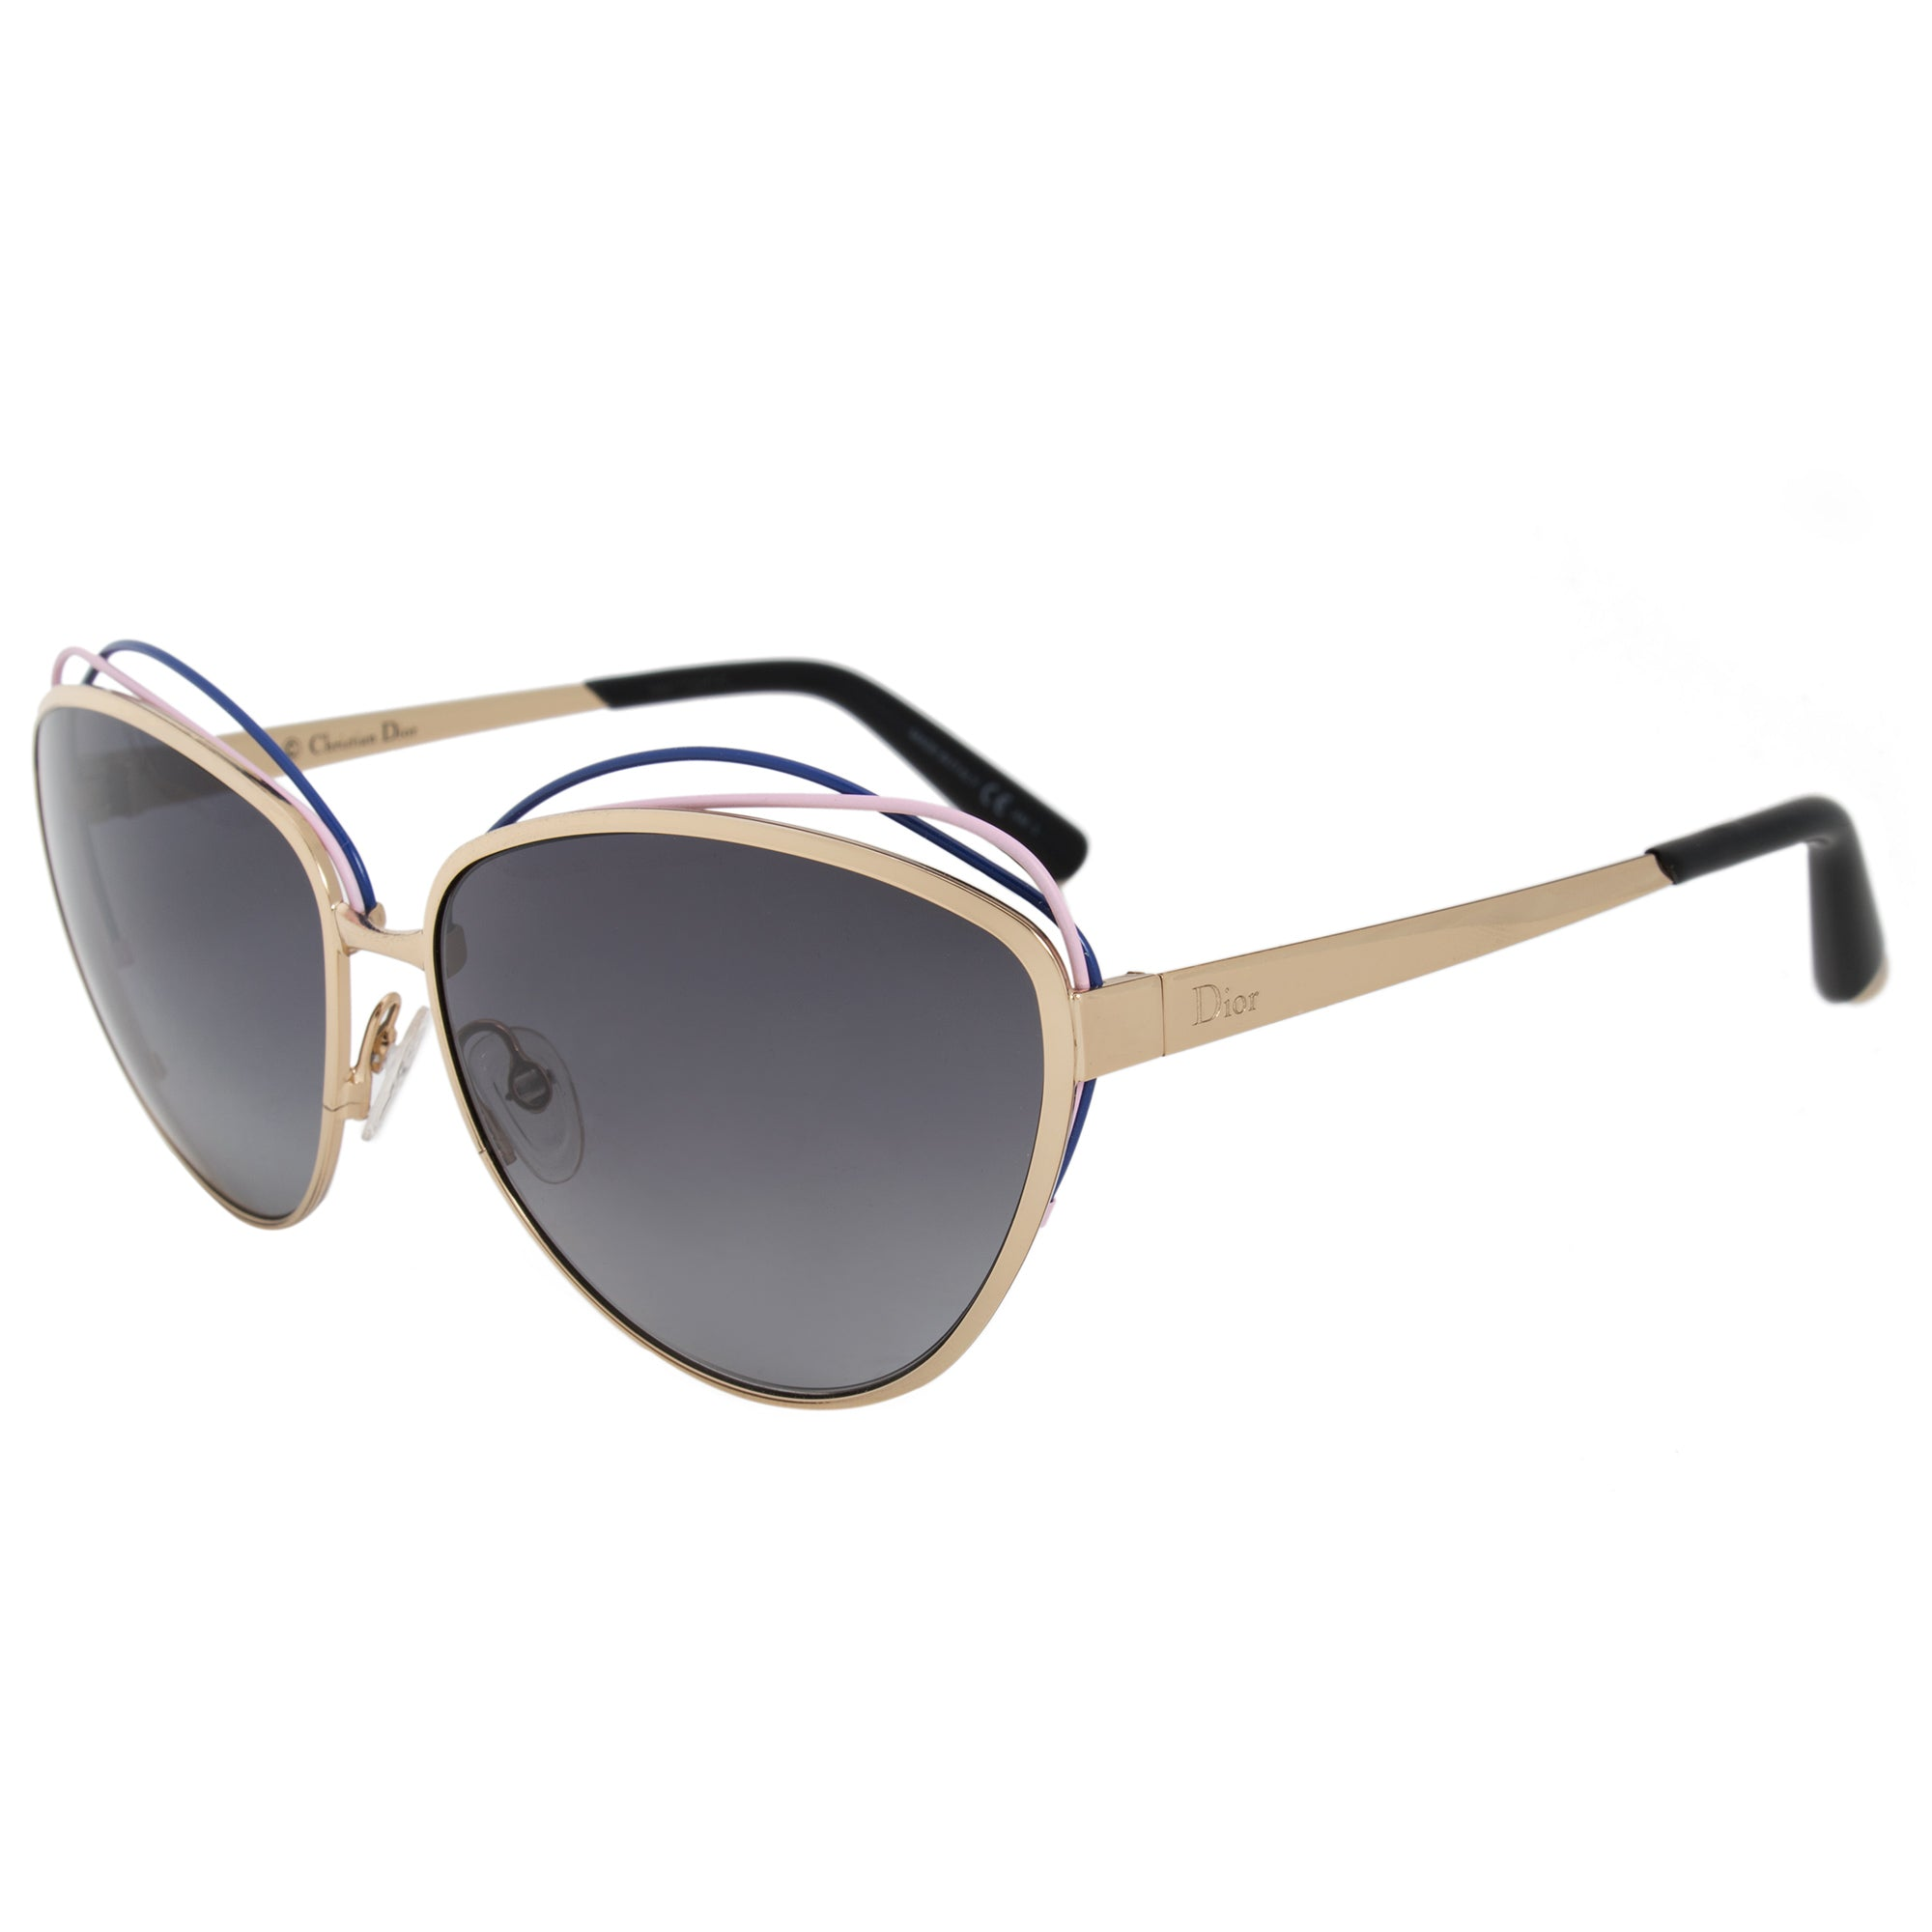 Christian Dior Songe JPFHD Sunglasses 62